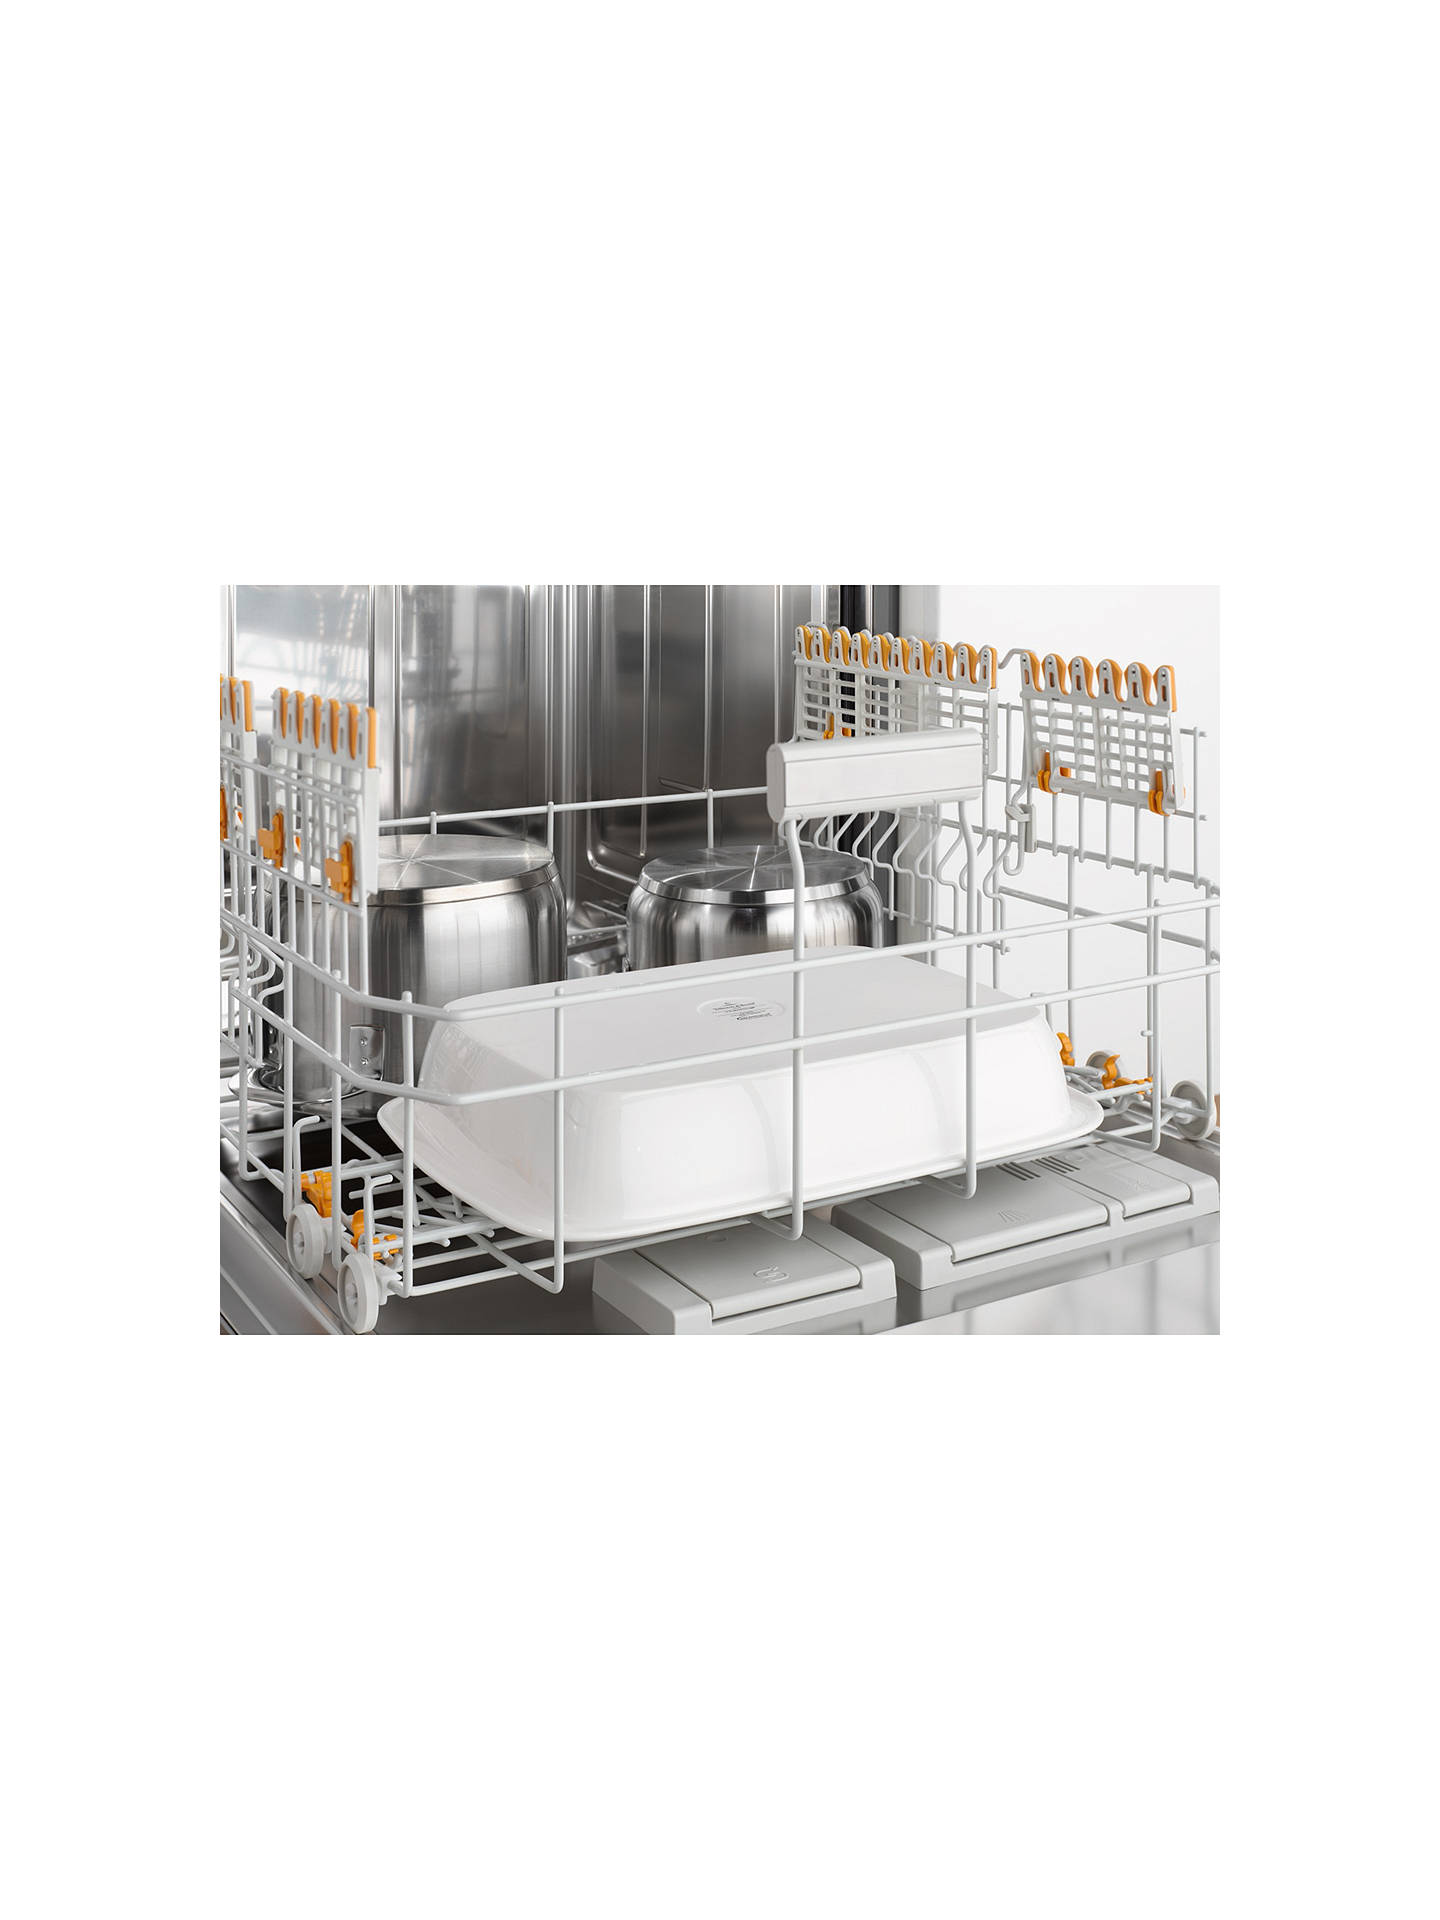 Buy Miele G6730 SCi Semi-Integrated Dishwasher, Havana Brown Online at johnlewis.com